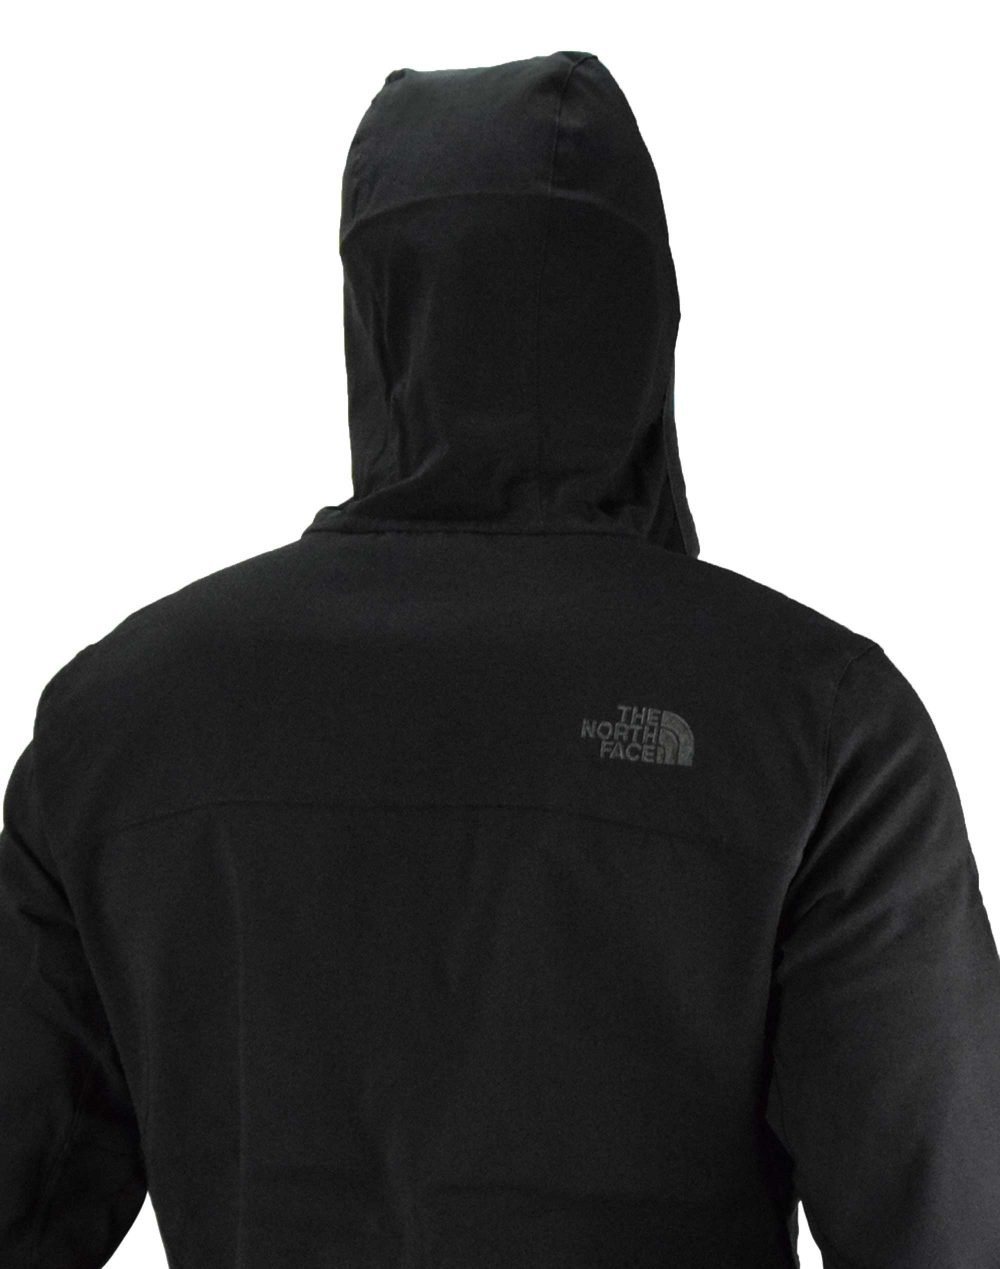 The North Face Nimble Hoodie Jacket (NF0A2XLBJK31) Black